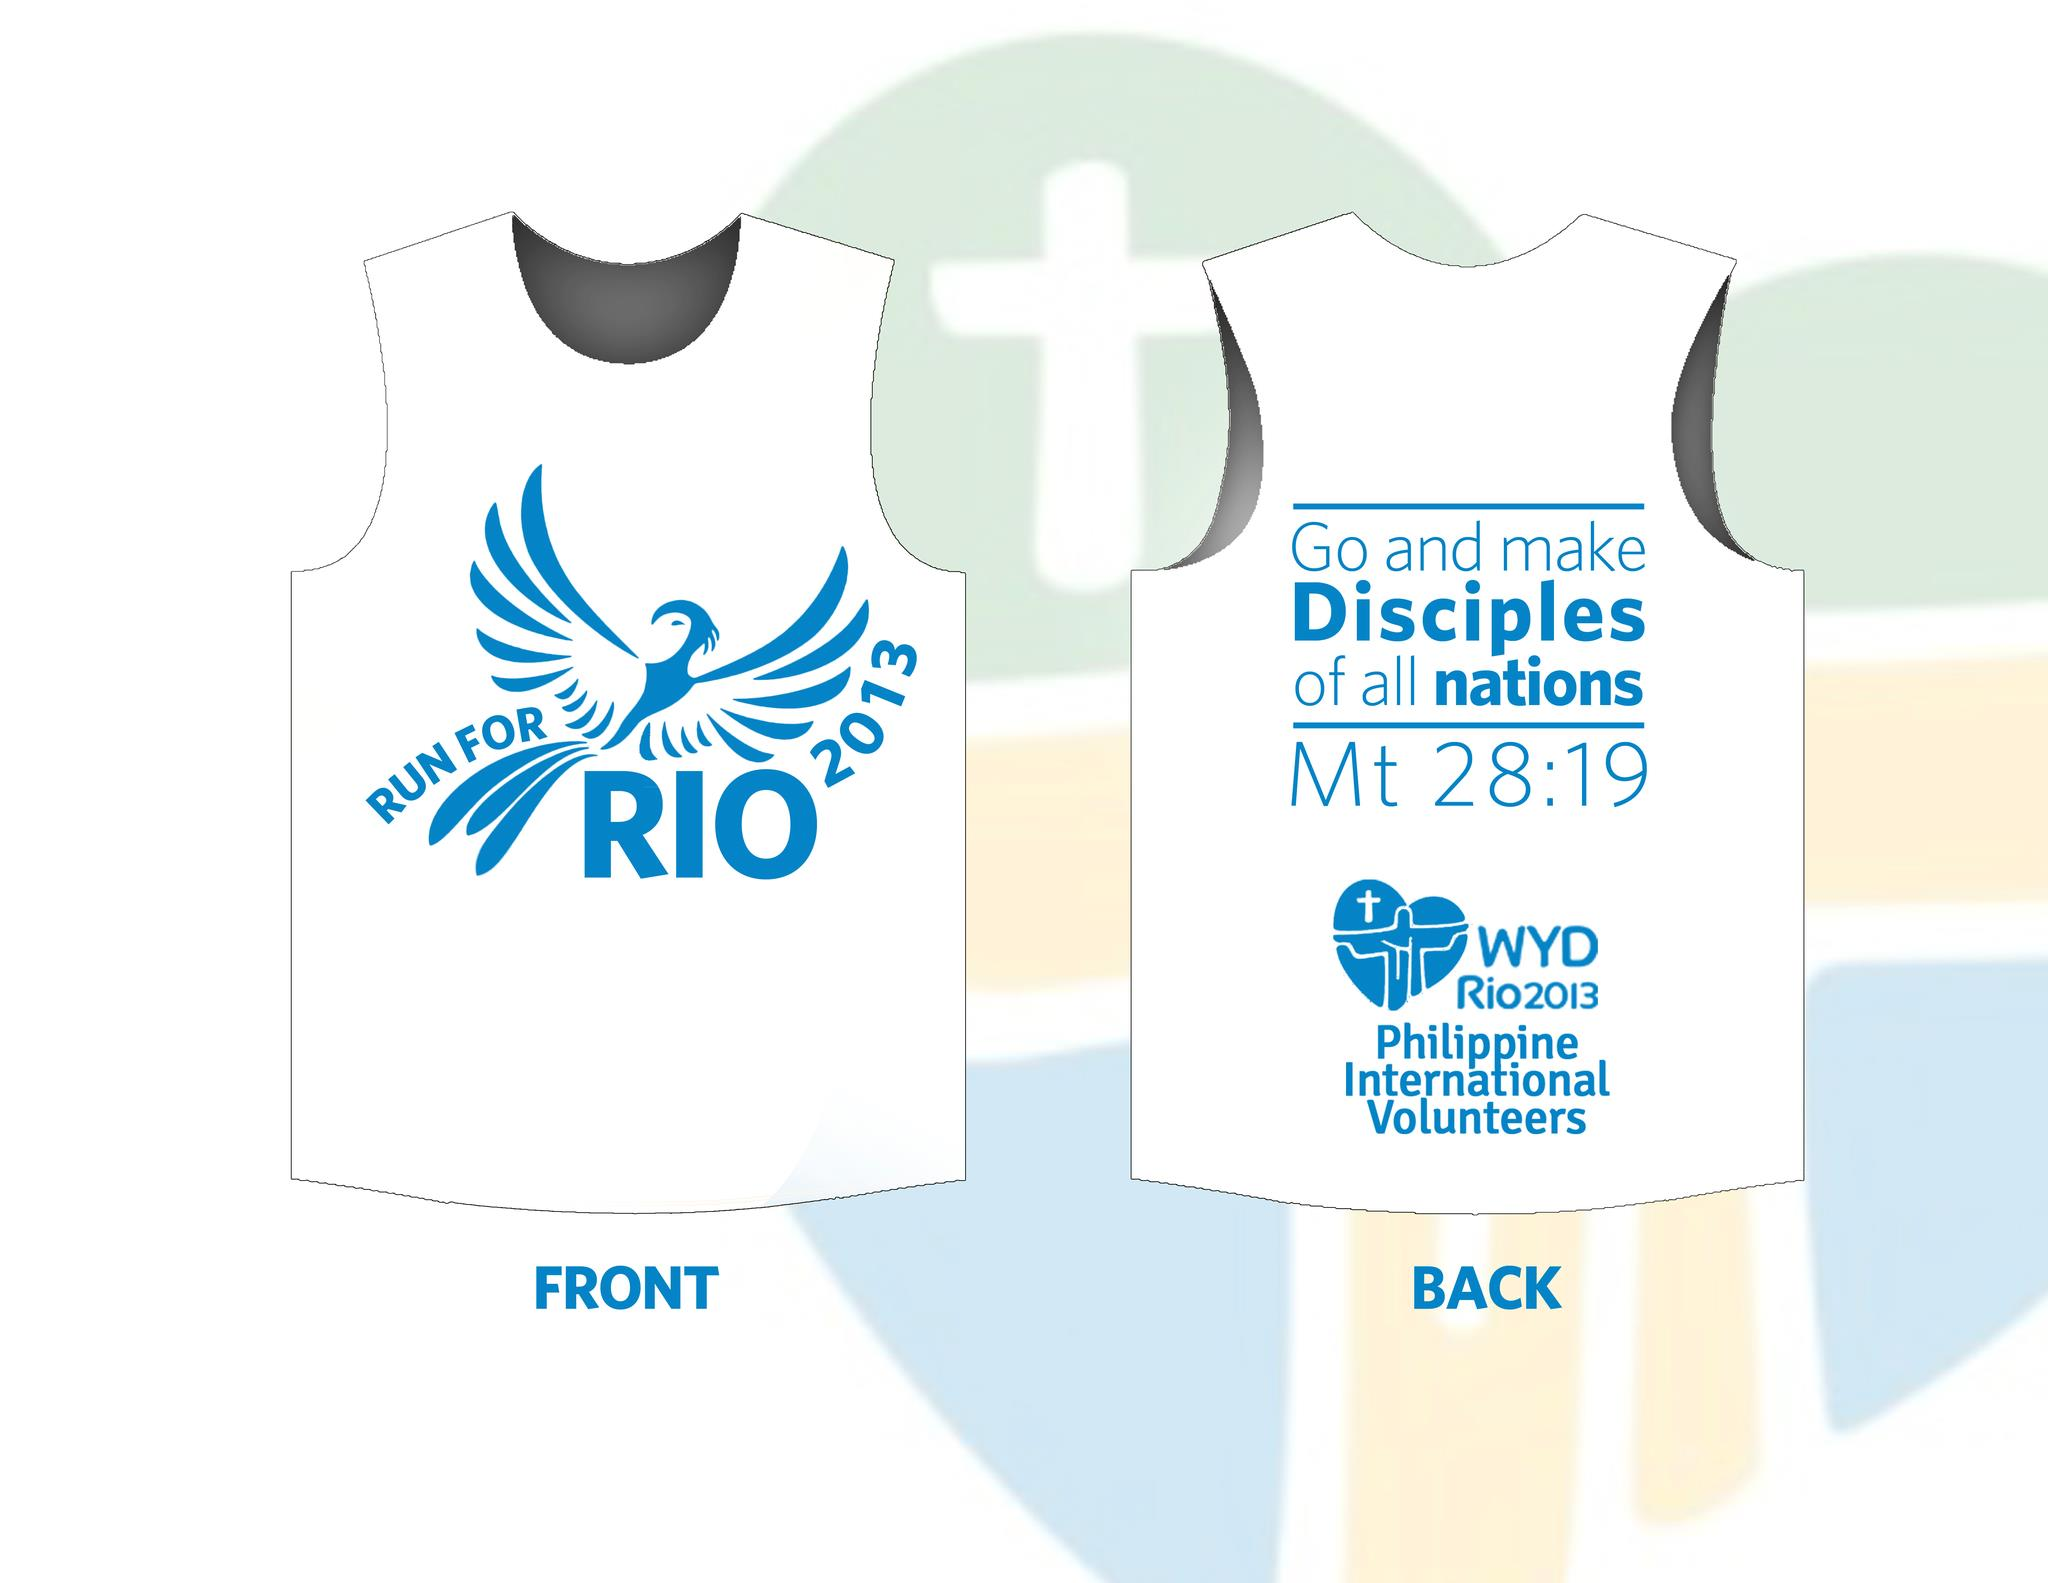 run-for-rio-2013-pampanga-singlet-design-white